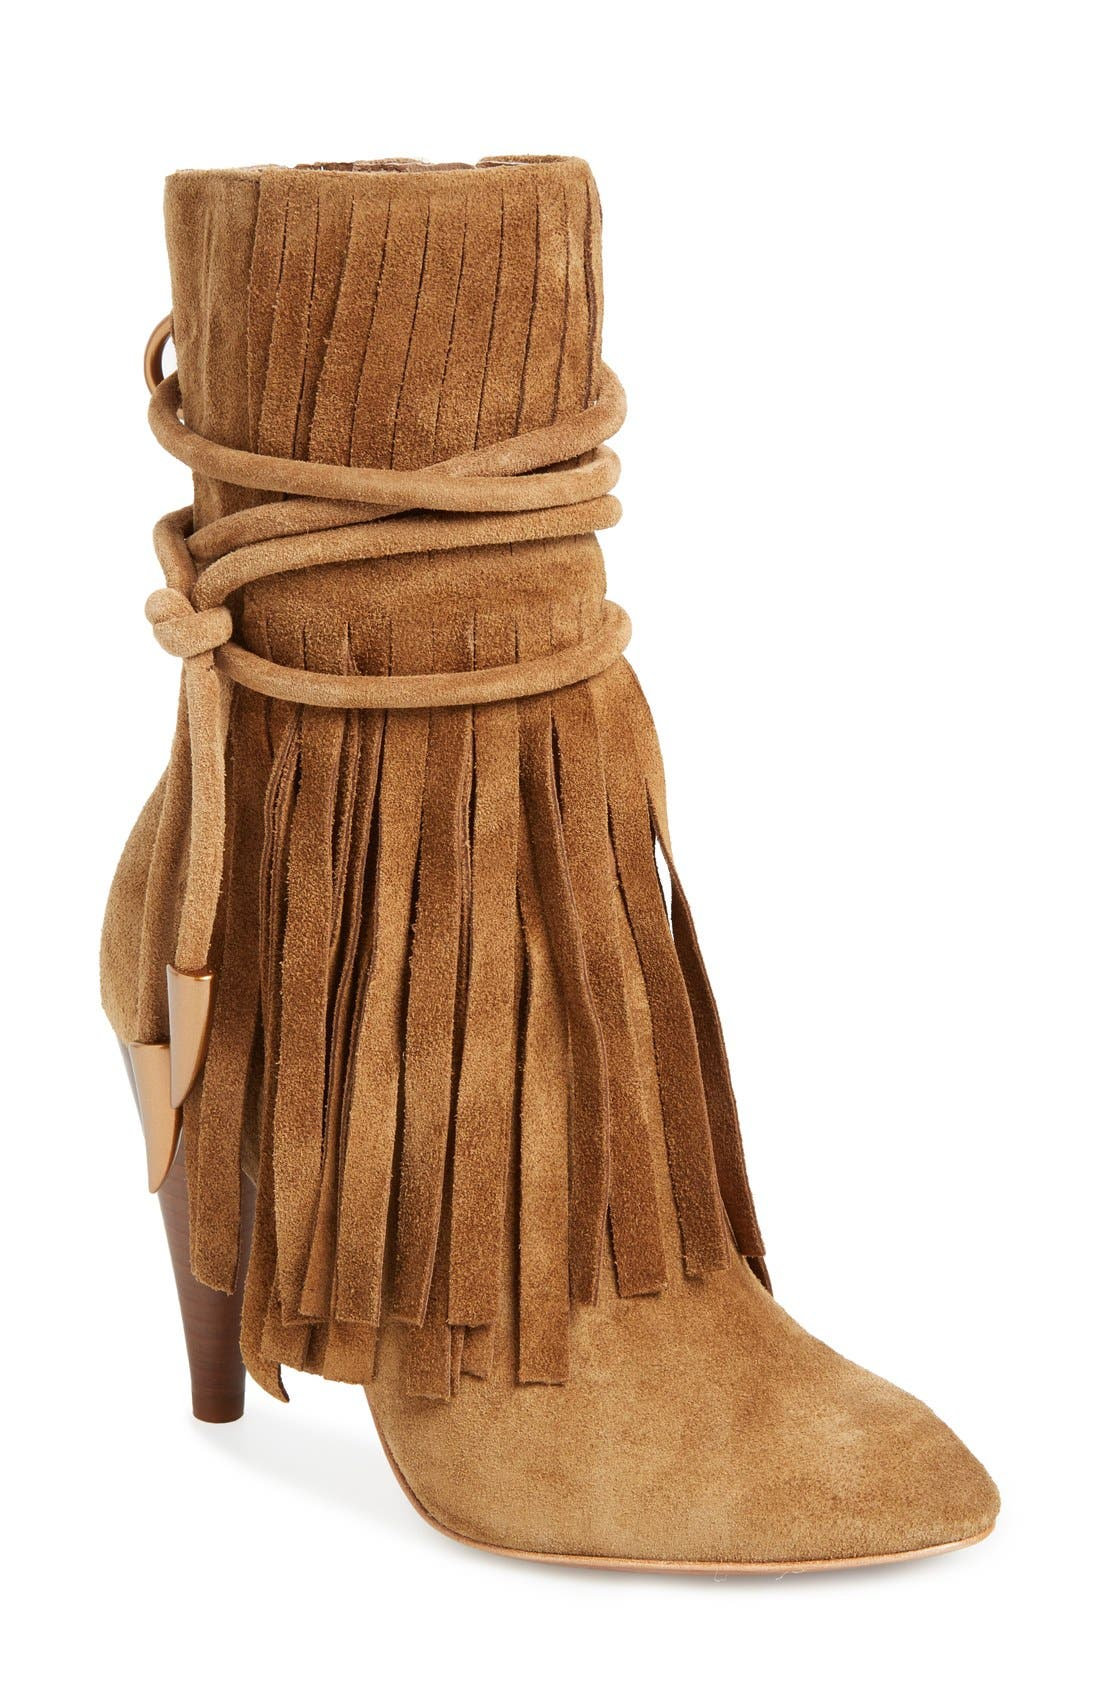 Main Image - Ash 'Bird' Fringe Boot (Women)